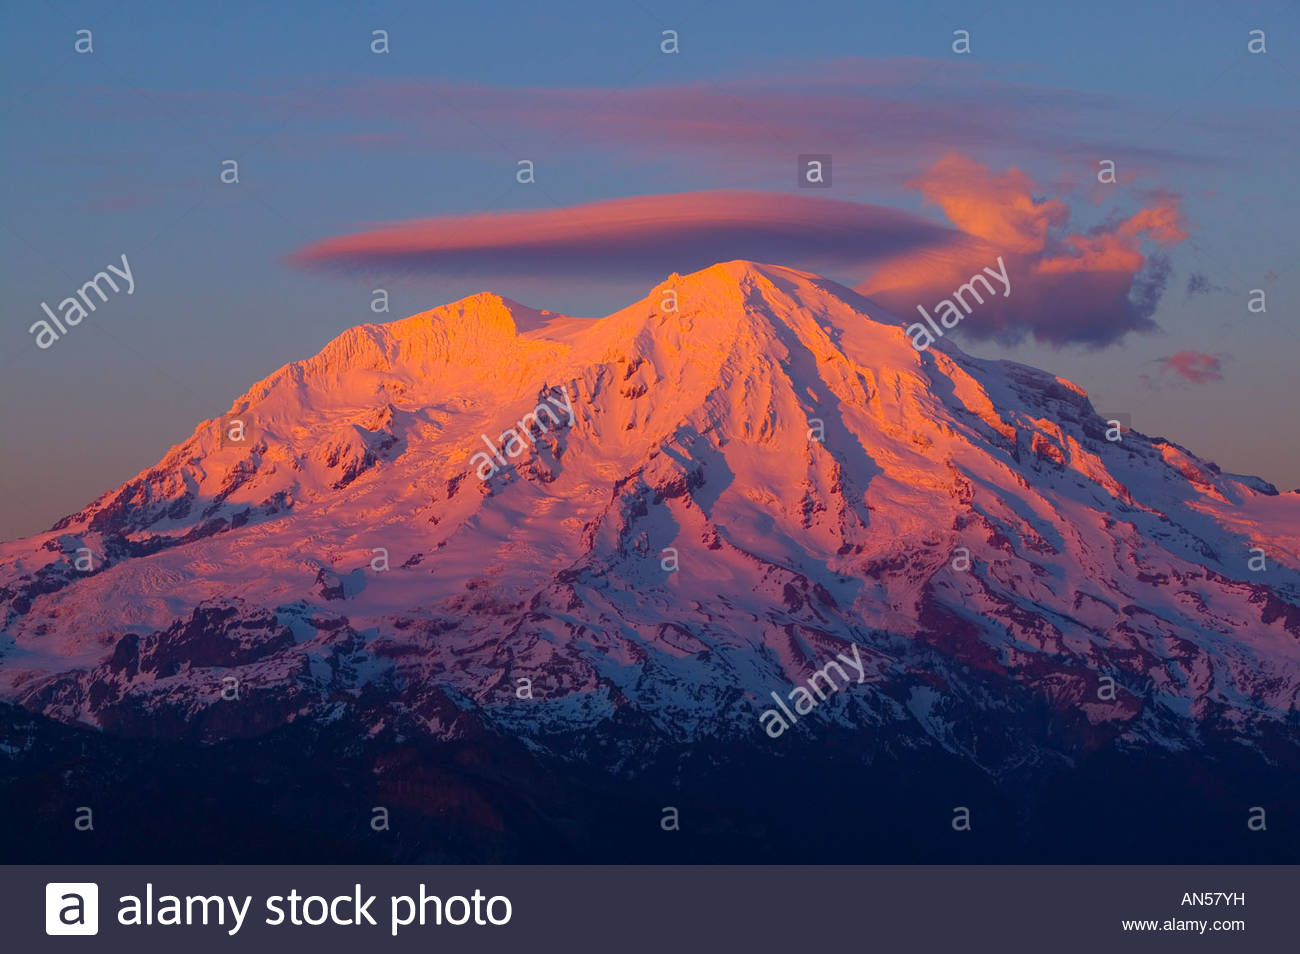 The last light of day illuminates the winter snow pack on Mount Rainier in this view from High Rock. - Stock Image